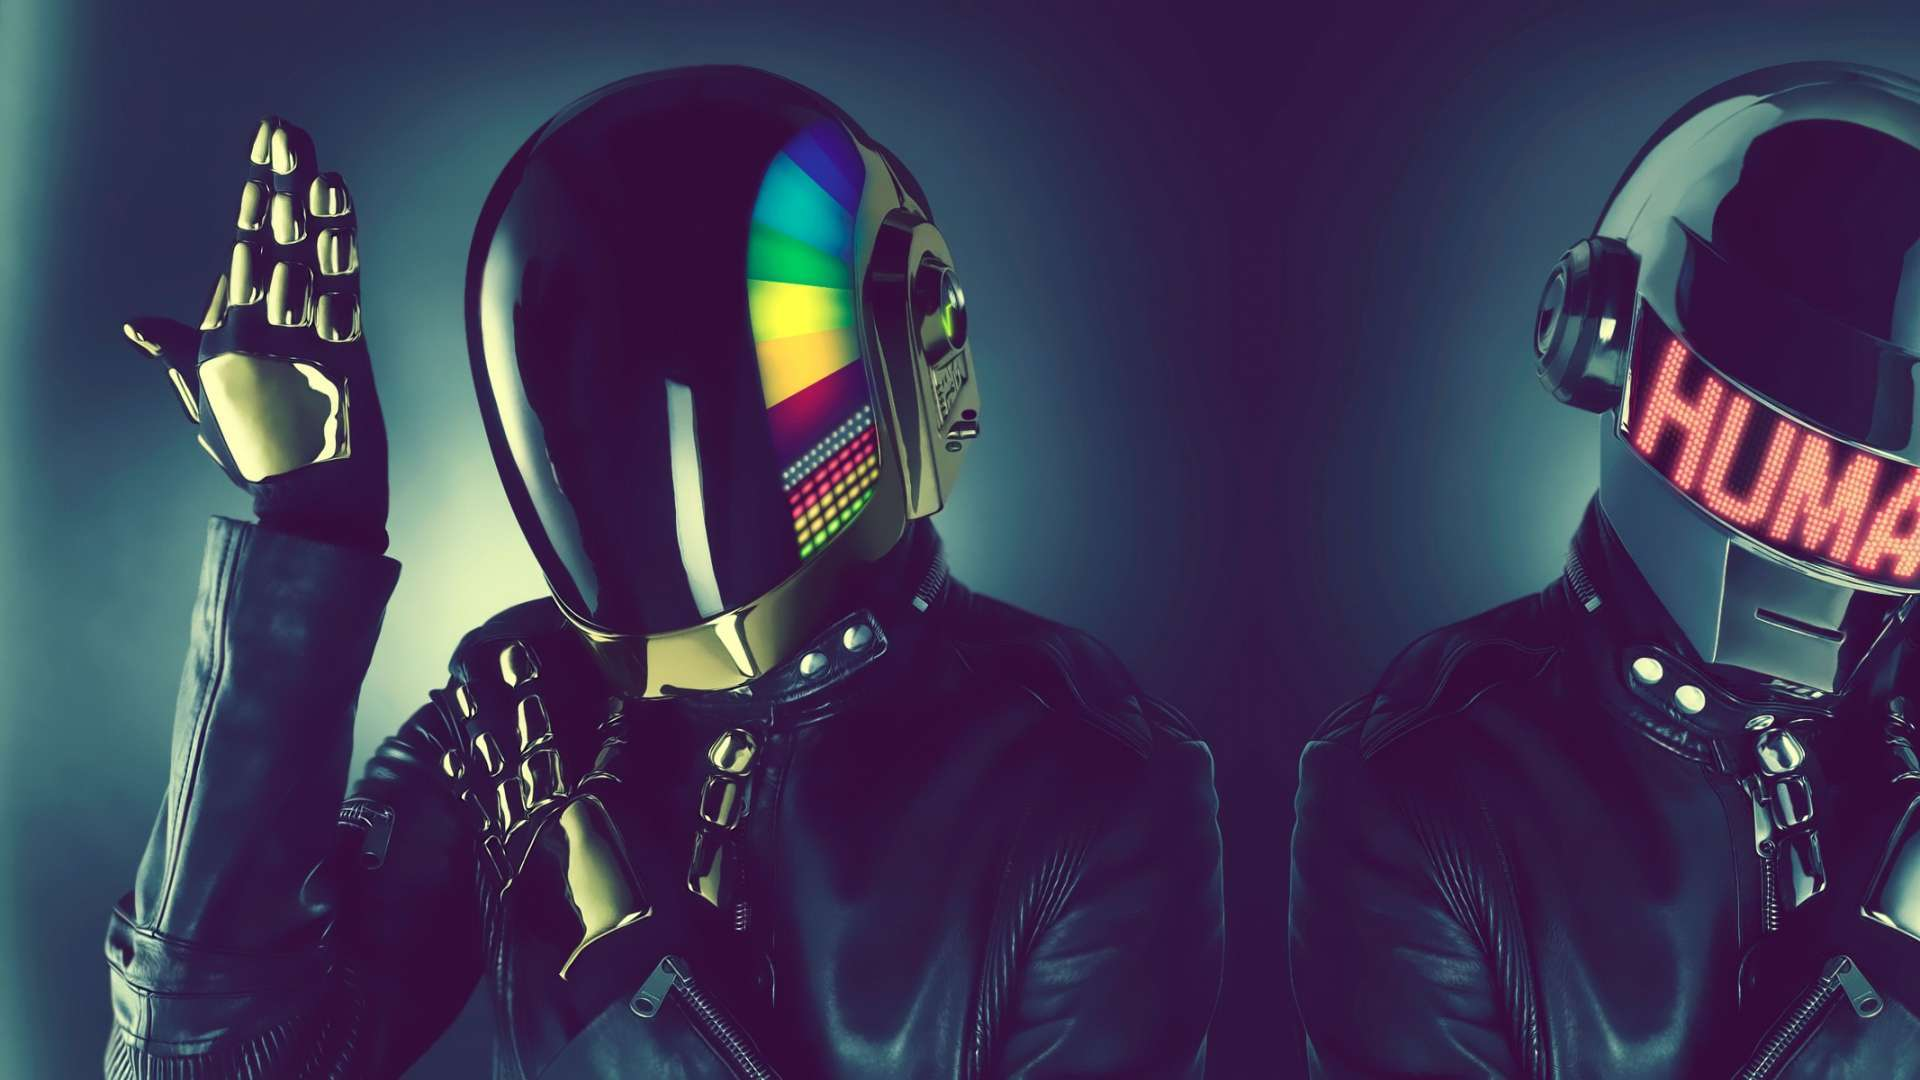 50+ Daft Punk 1080p Wallpaper on WallpaperSafari